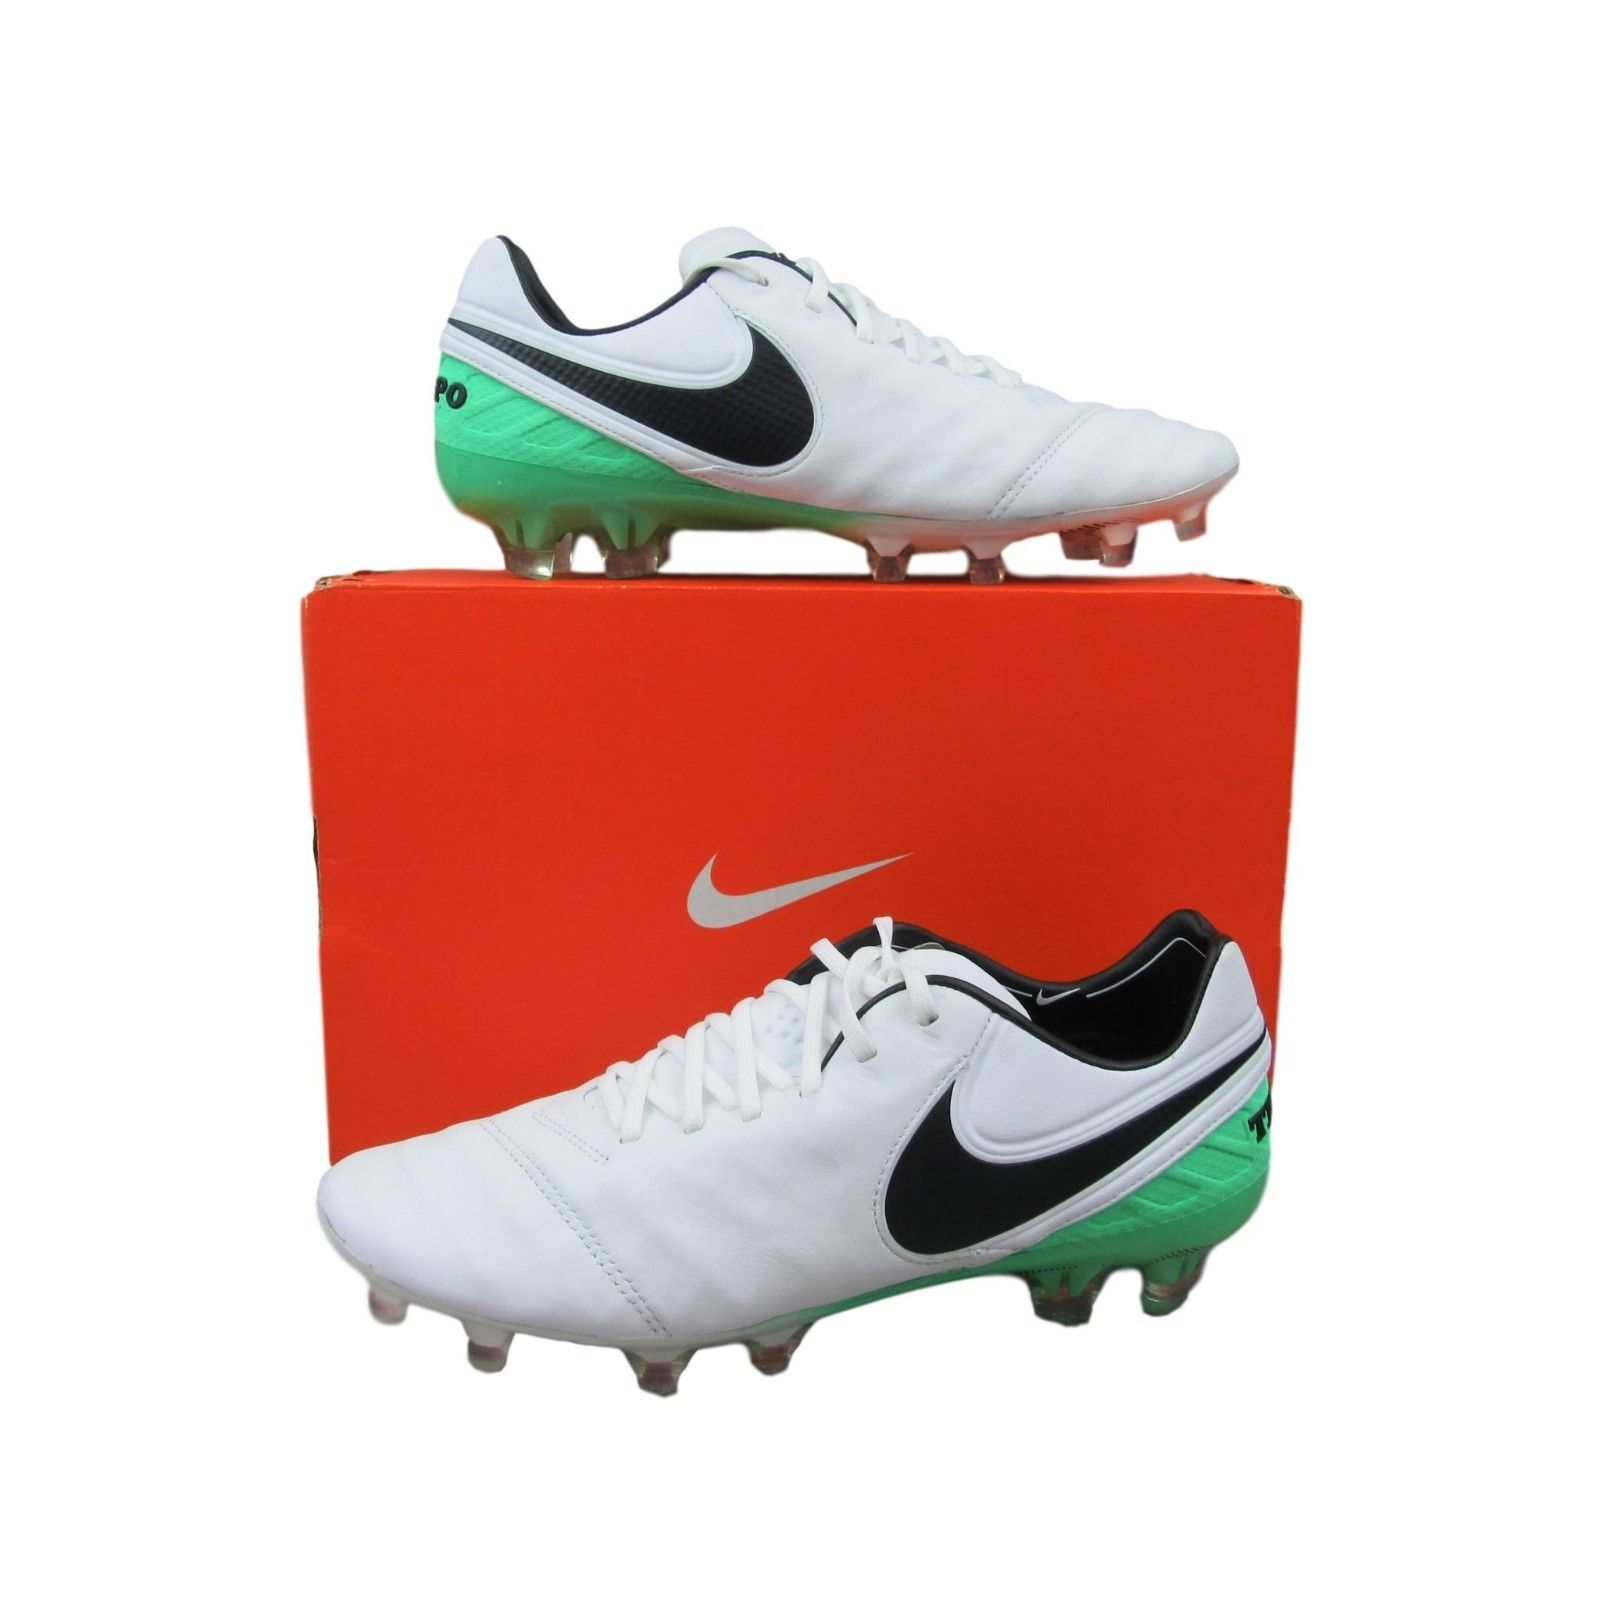 21ed5ee5ab18 Nike Tiempo Legend VI FG Soccer Cleats Size 7 Mens White Green ...